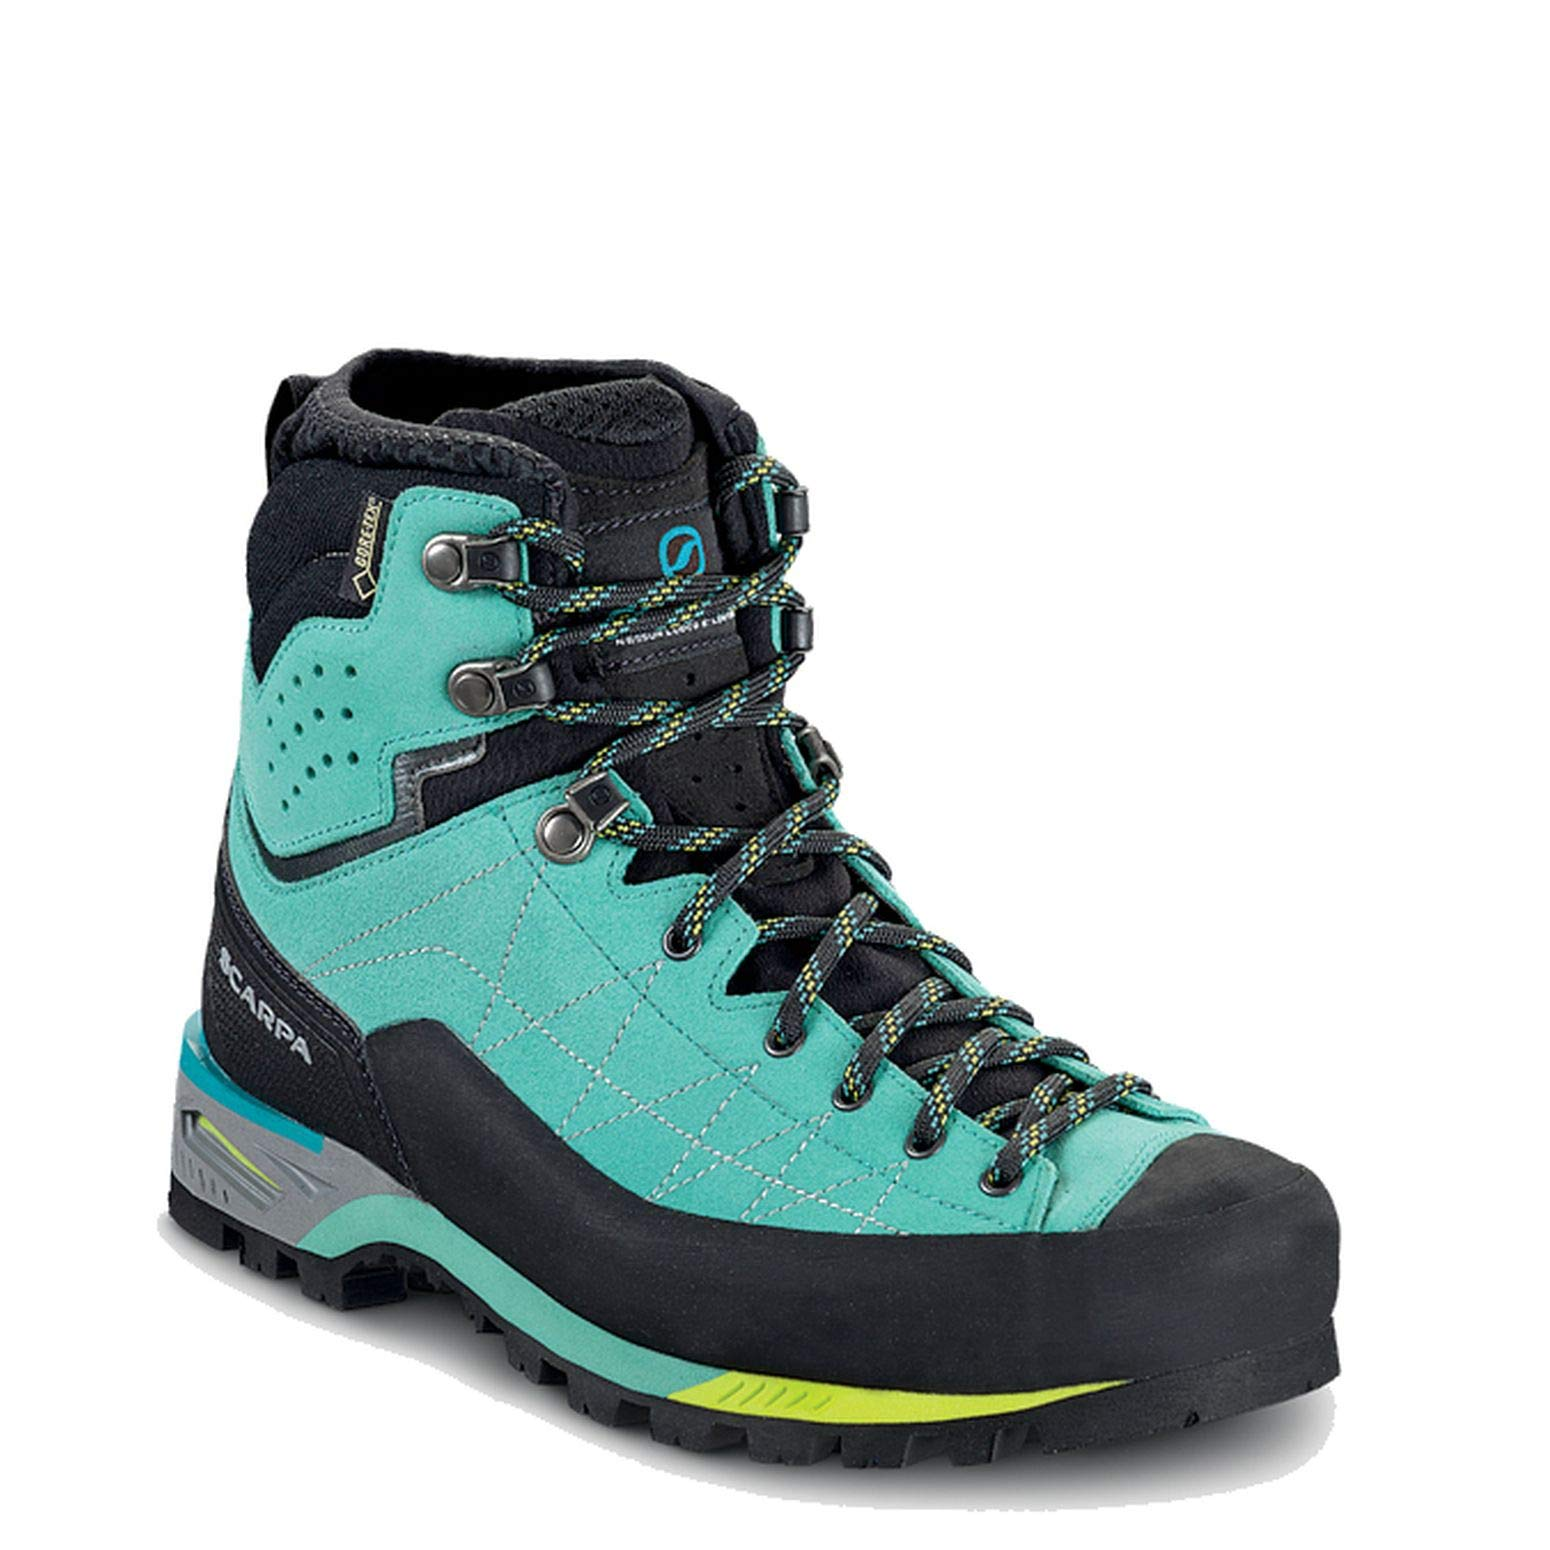 SCARPA Women's Zodiac Tech GTX Mountaineering Boot Green Blue - 40